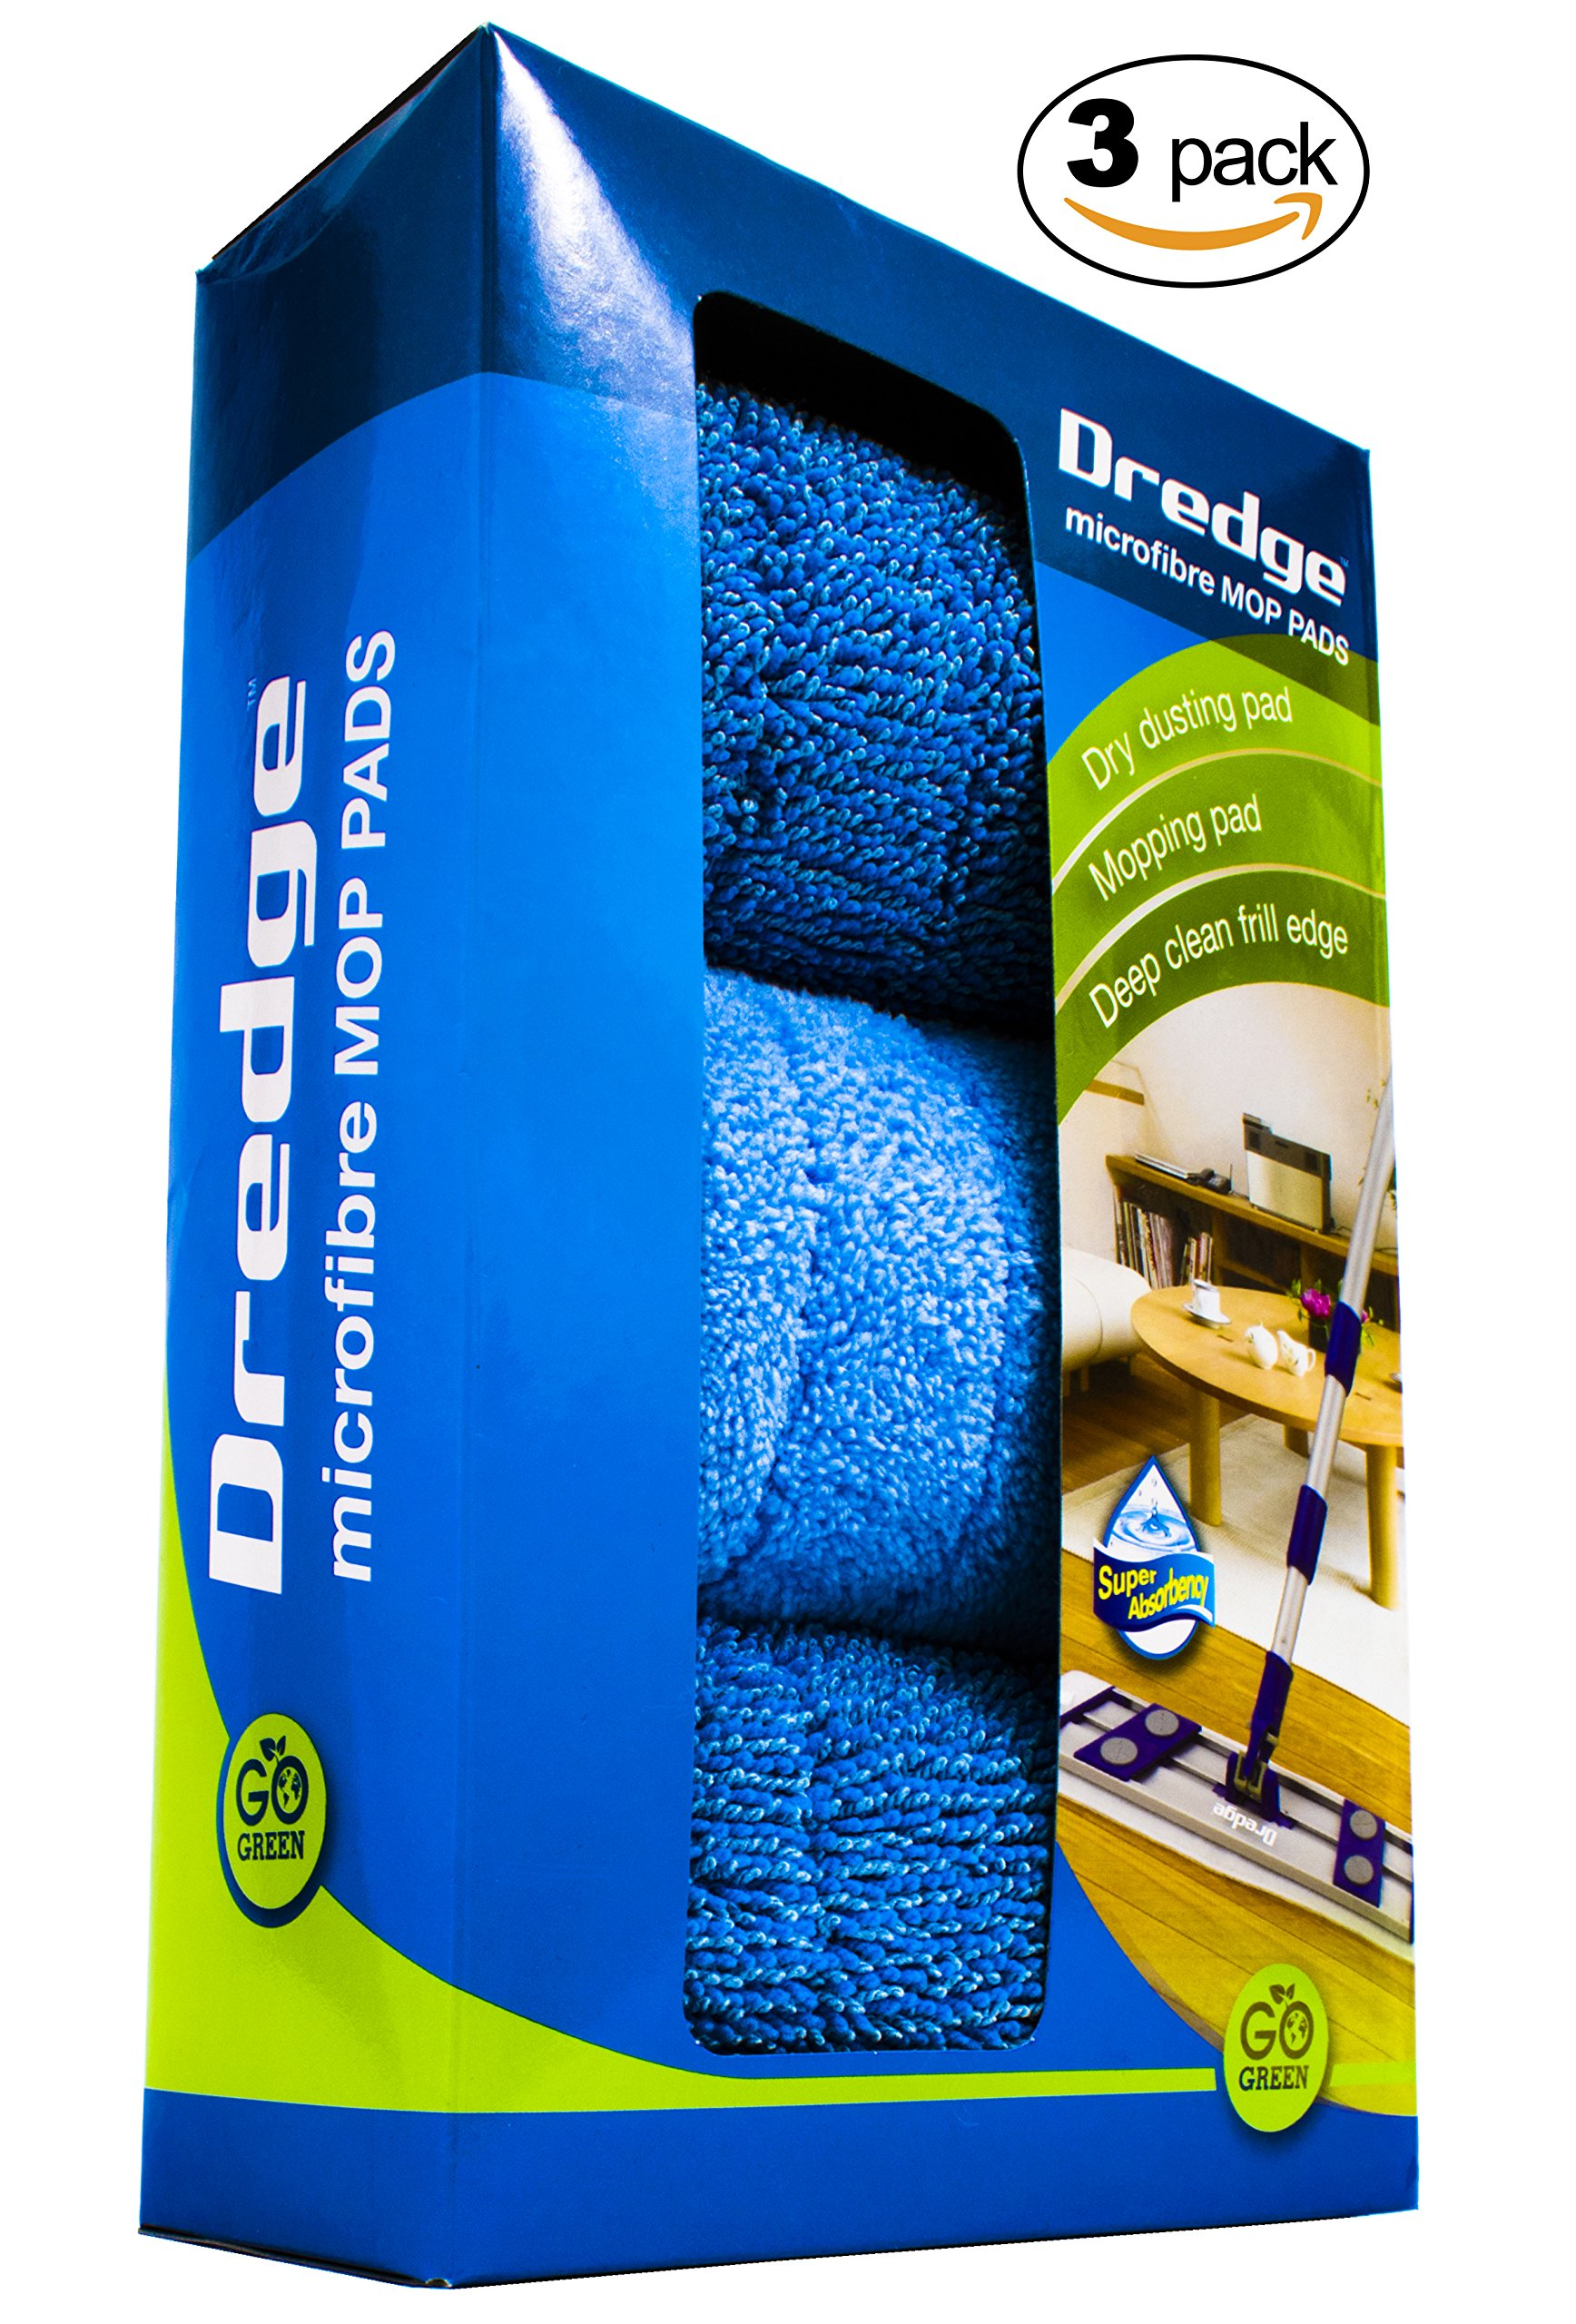 3-Pack 15.5'' Drag Resistant Microfiber mop pad refills for hardwood tile laminate and stone floors. DREDGE replacement pads. Best all in one multi-task reusable floor care kit |Dry & Wet cleaning.